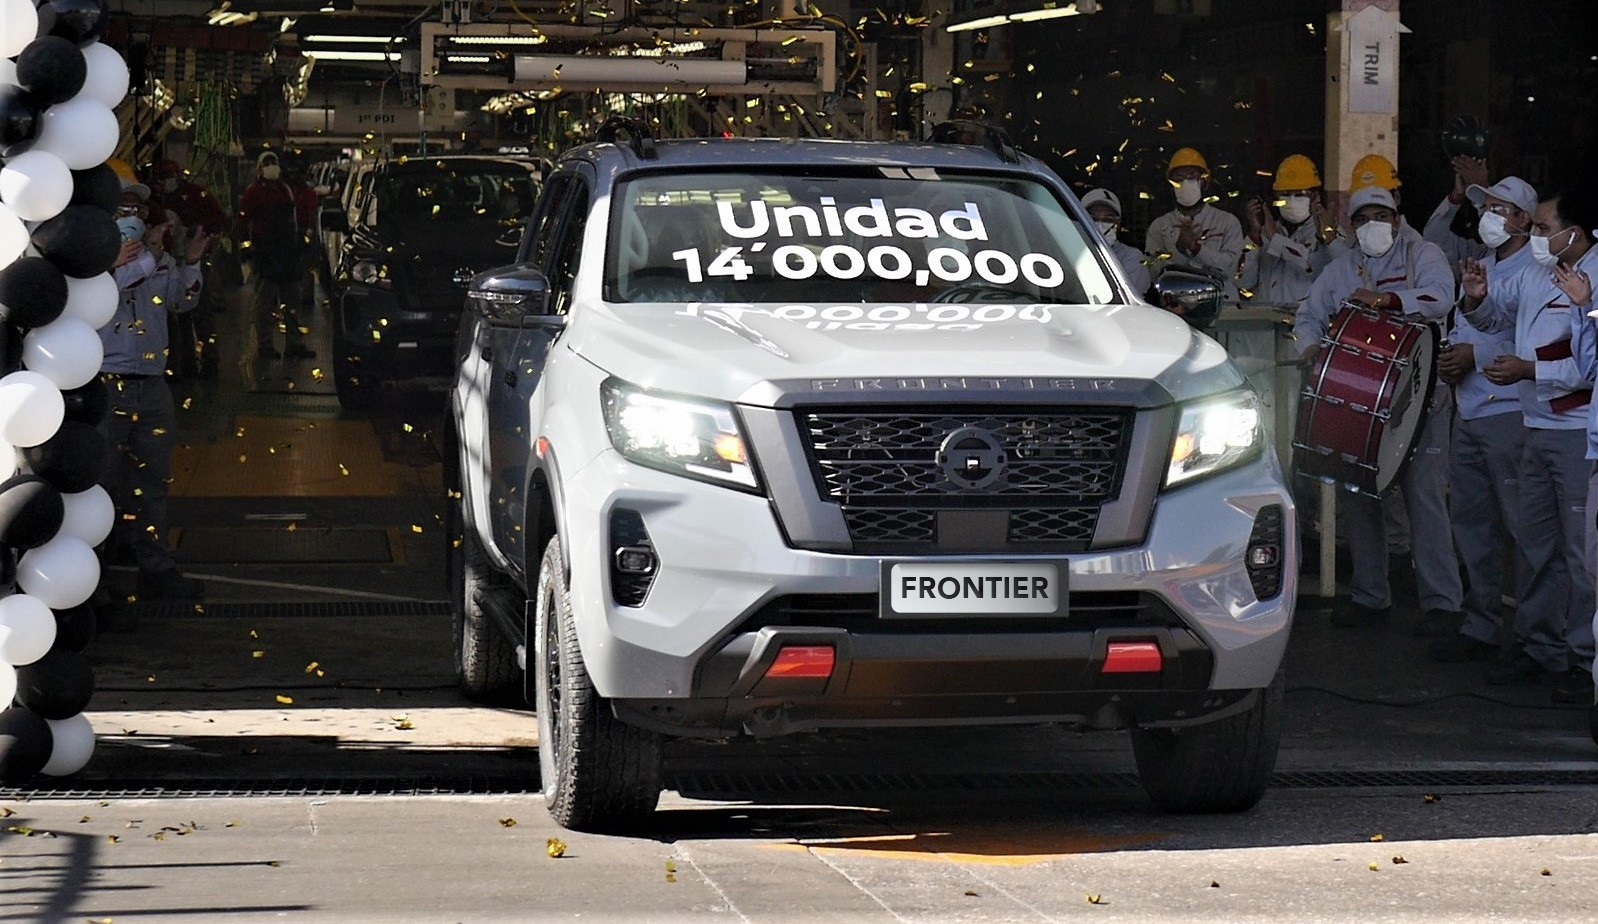 Nissan celebrates the production of 14 million units in Mexico